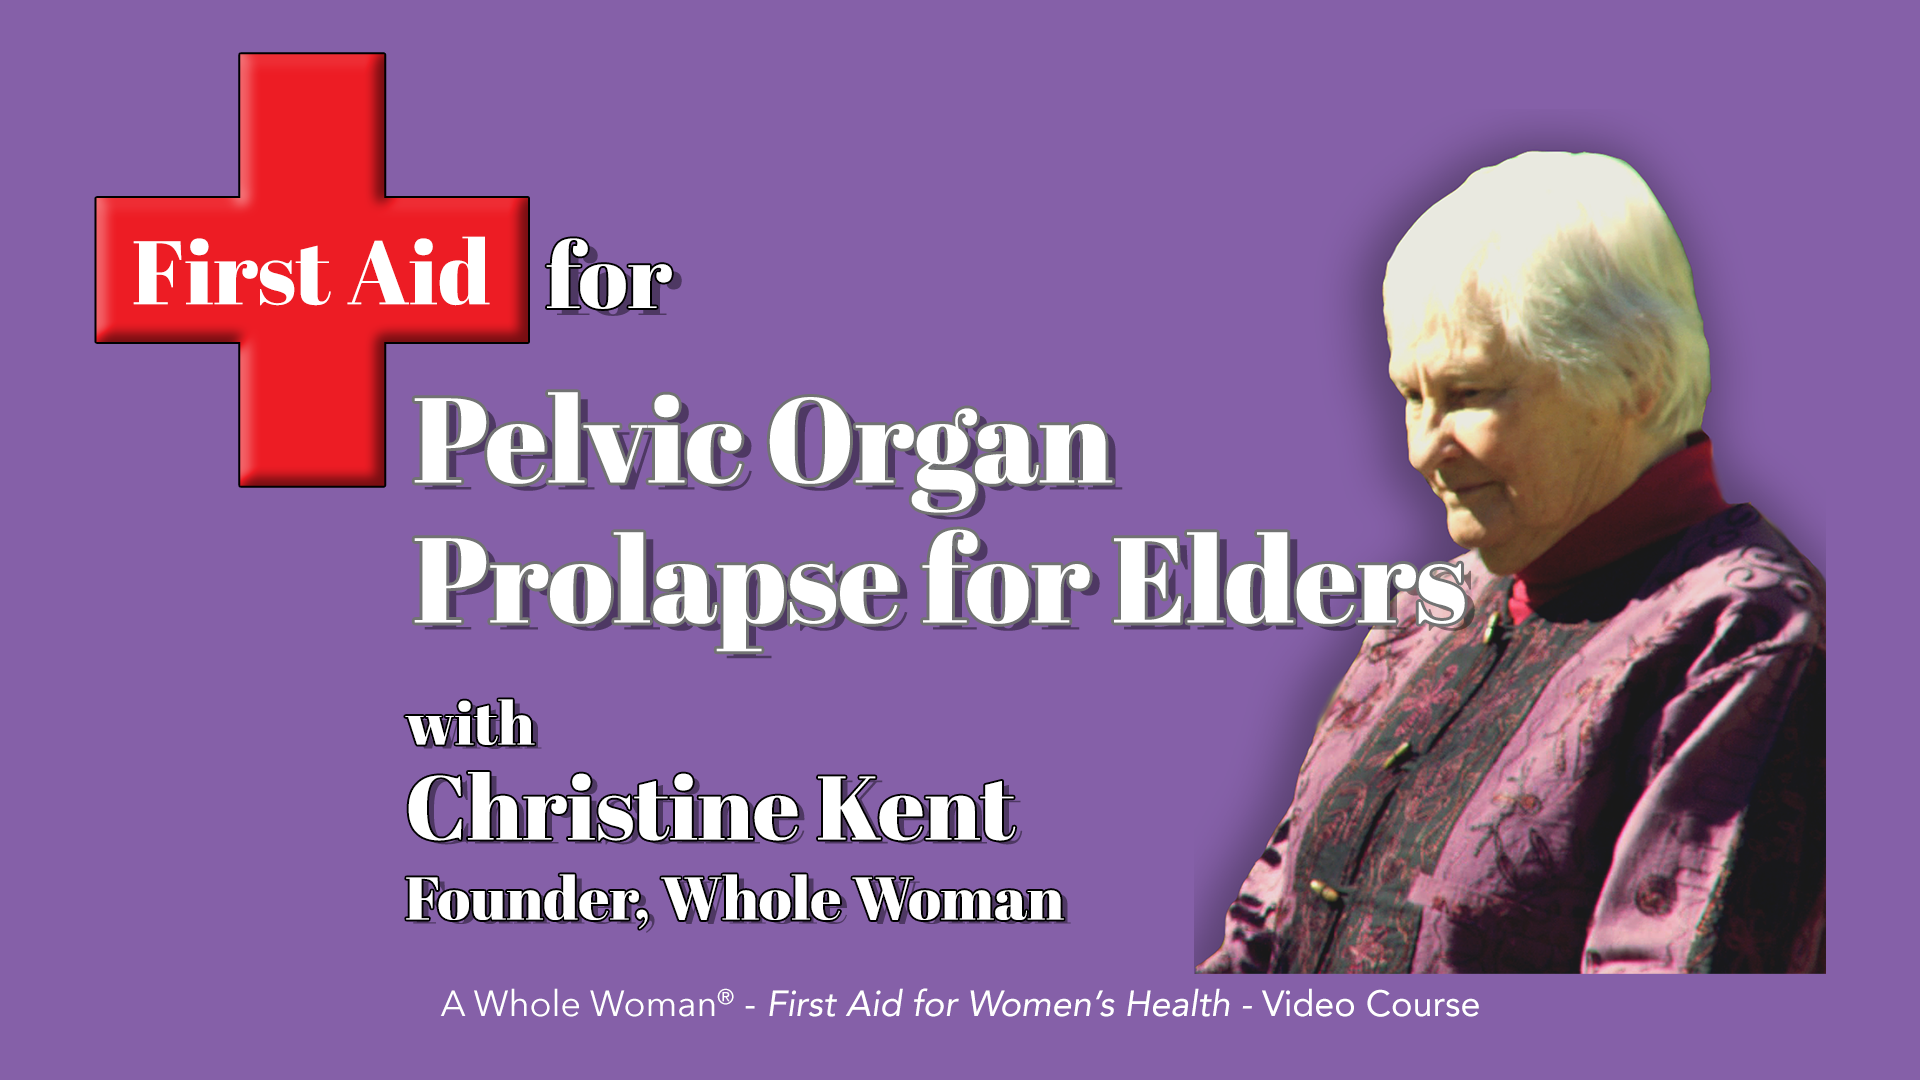 First Aid for Prolapse for Elders